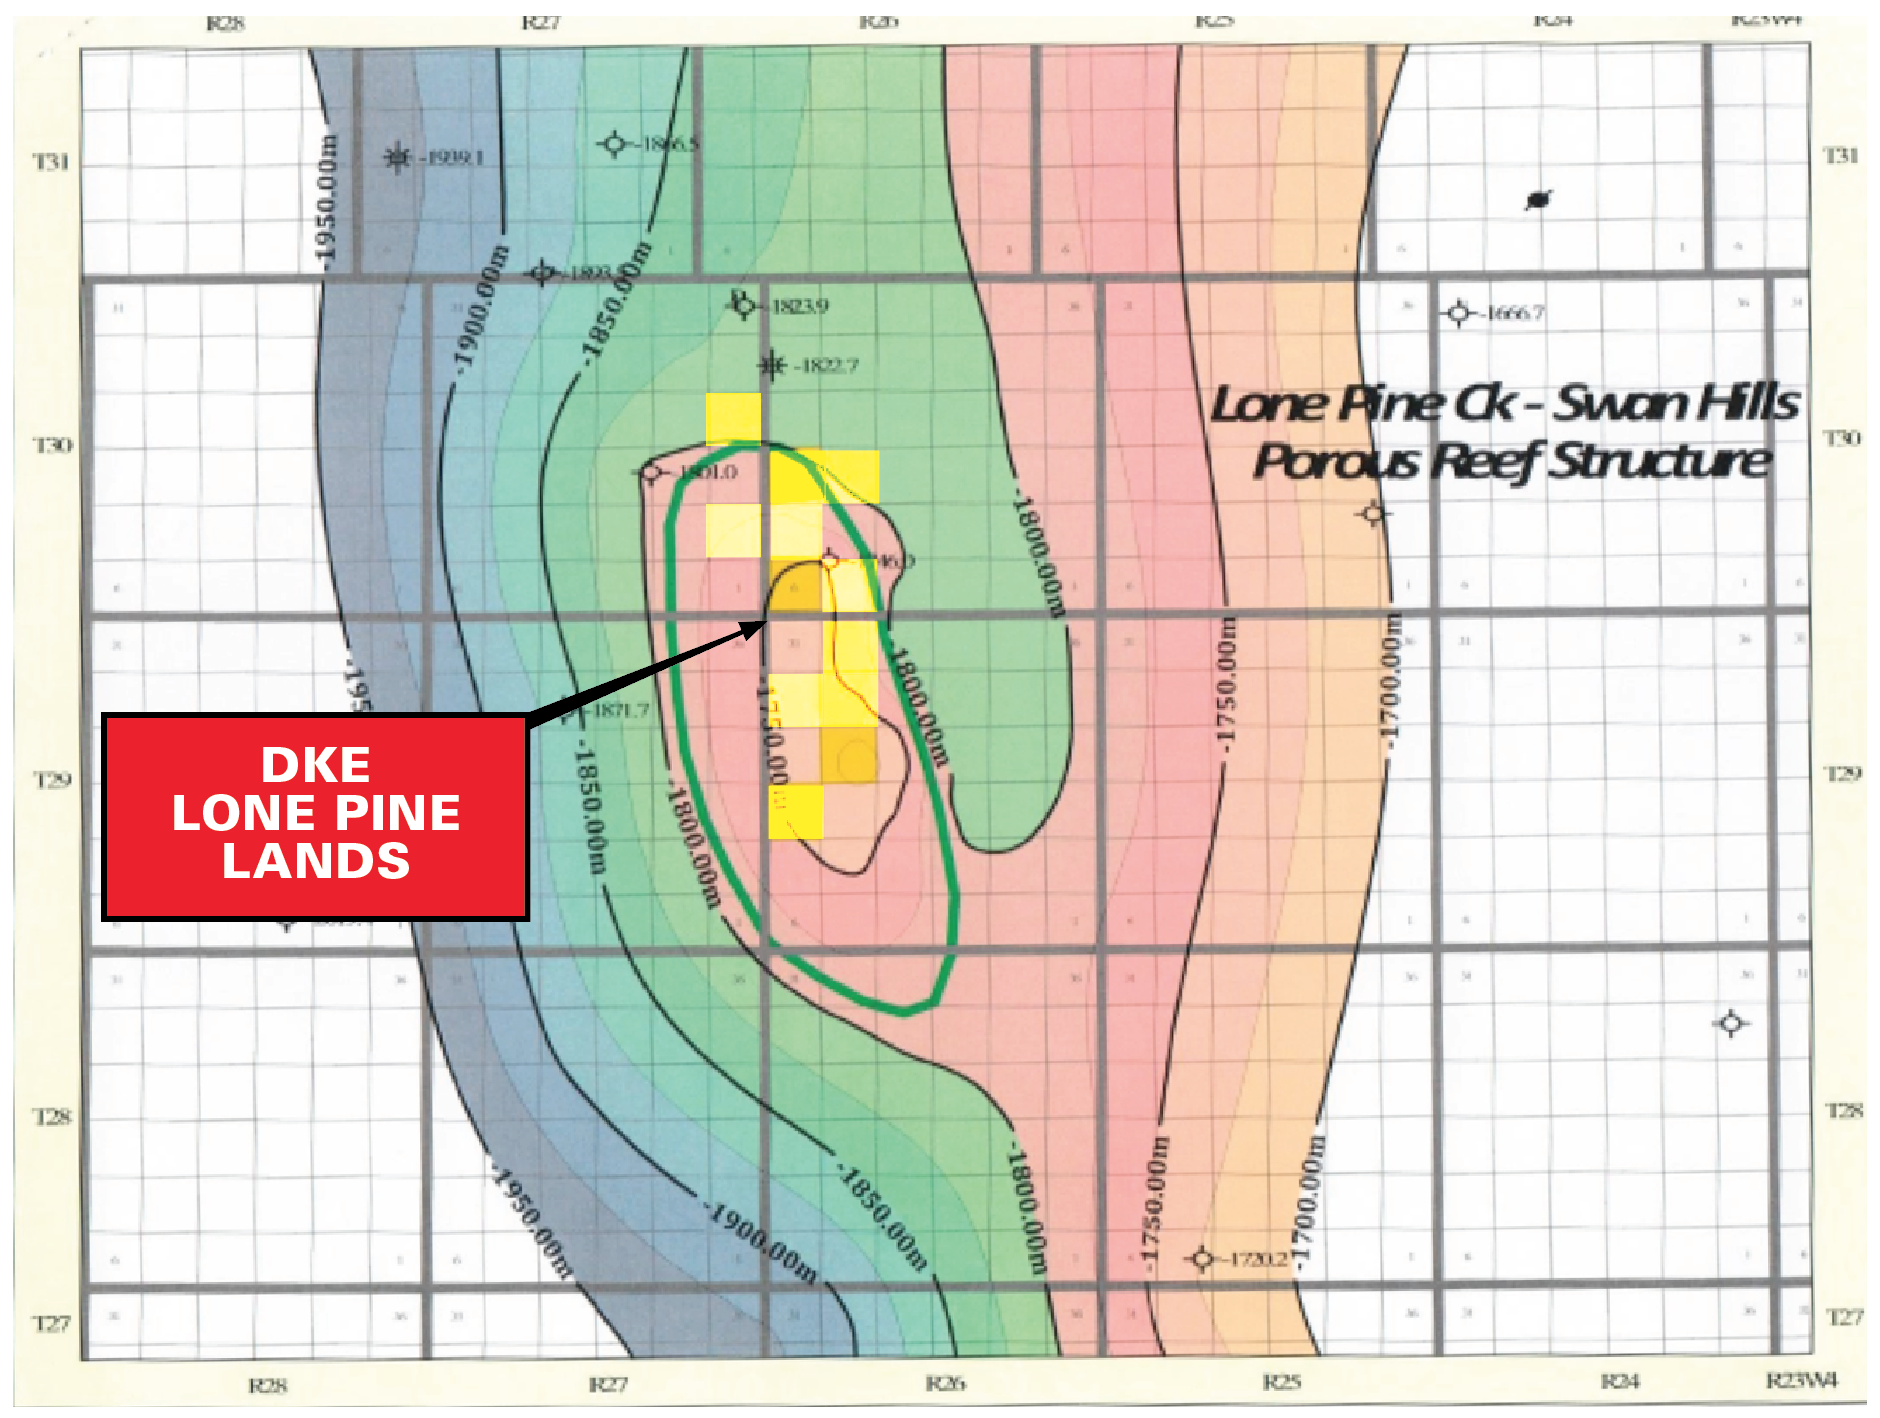 MAP 4 LONE PINE CREEK PROSPECT POROUS REEF STRUCTURE MAP